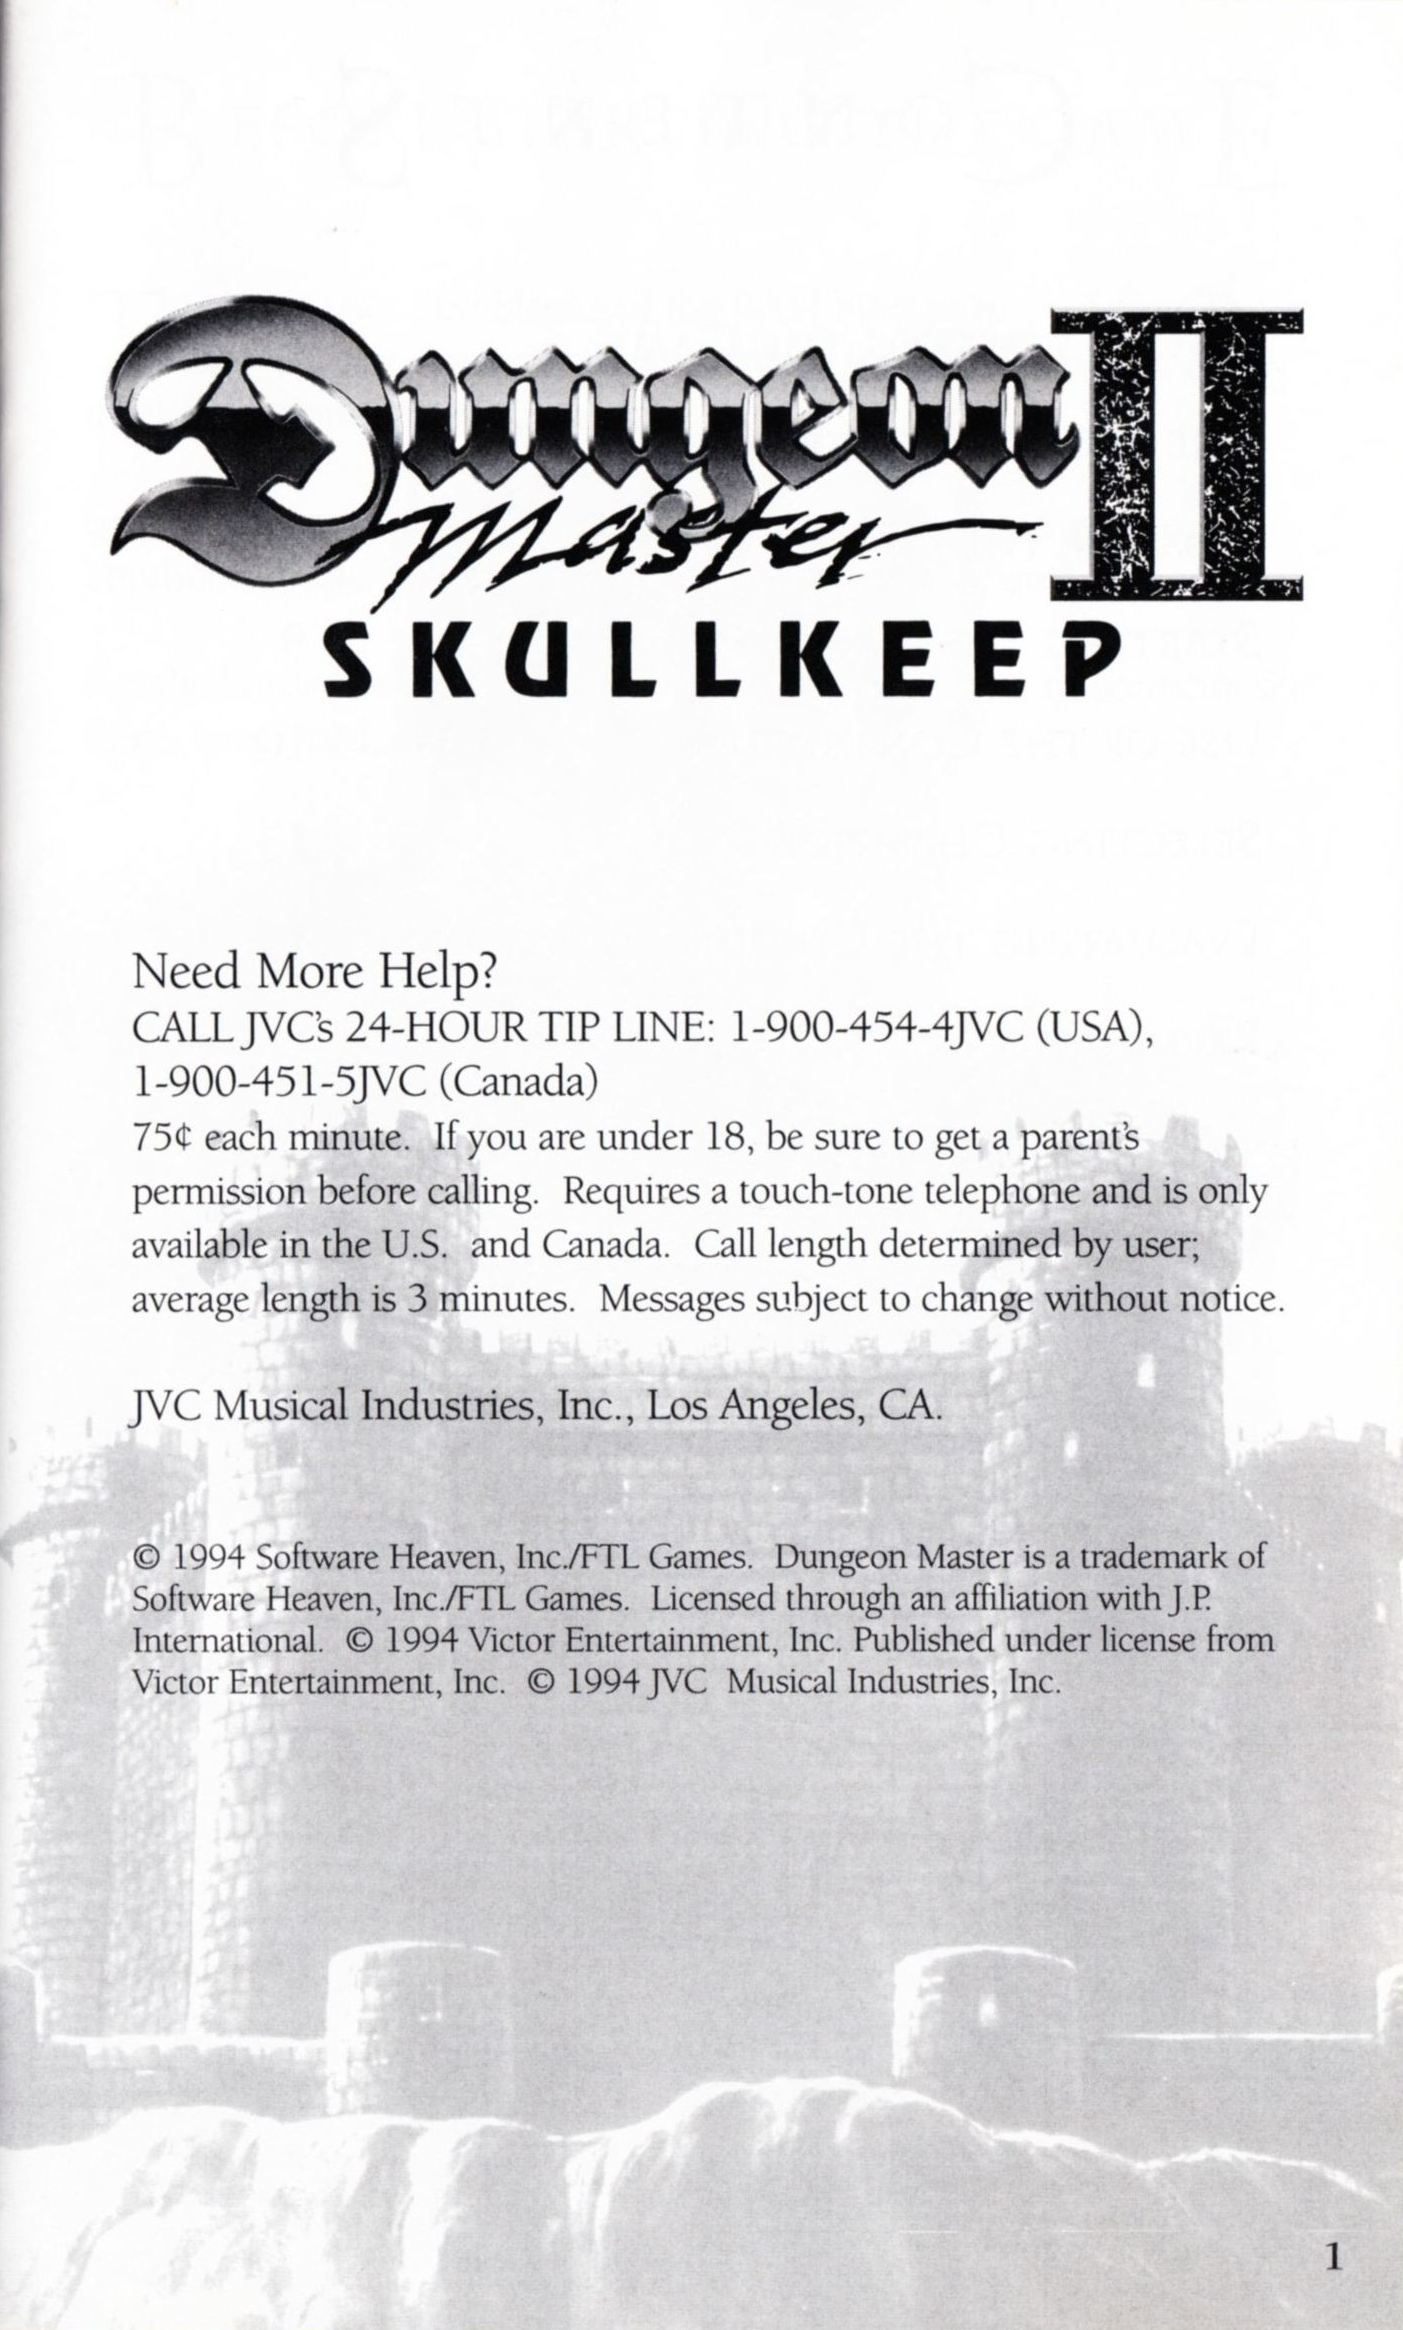 Game - Dungeon Master II - US - Sega CD - Booklet - Page 003 - Scan